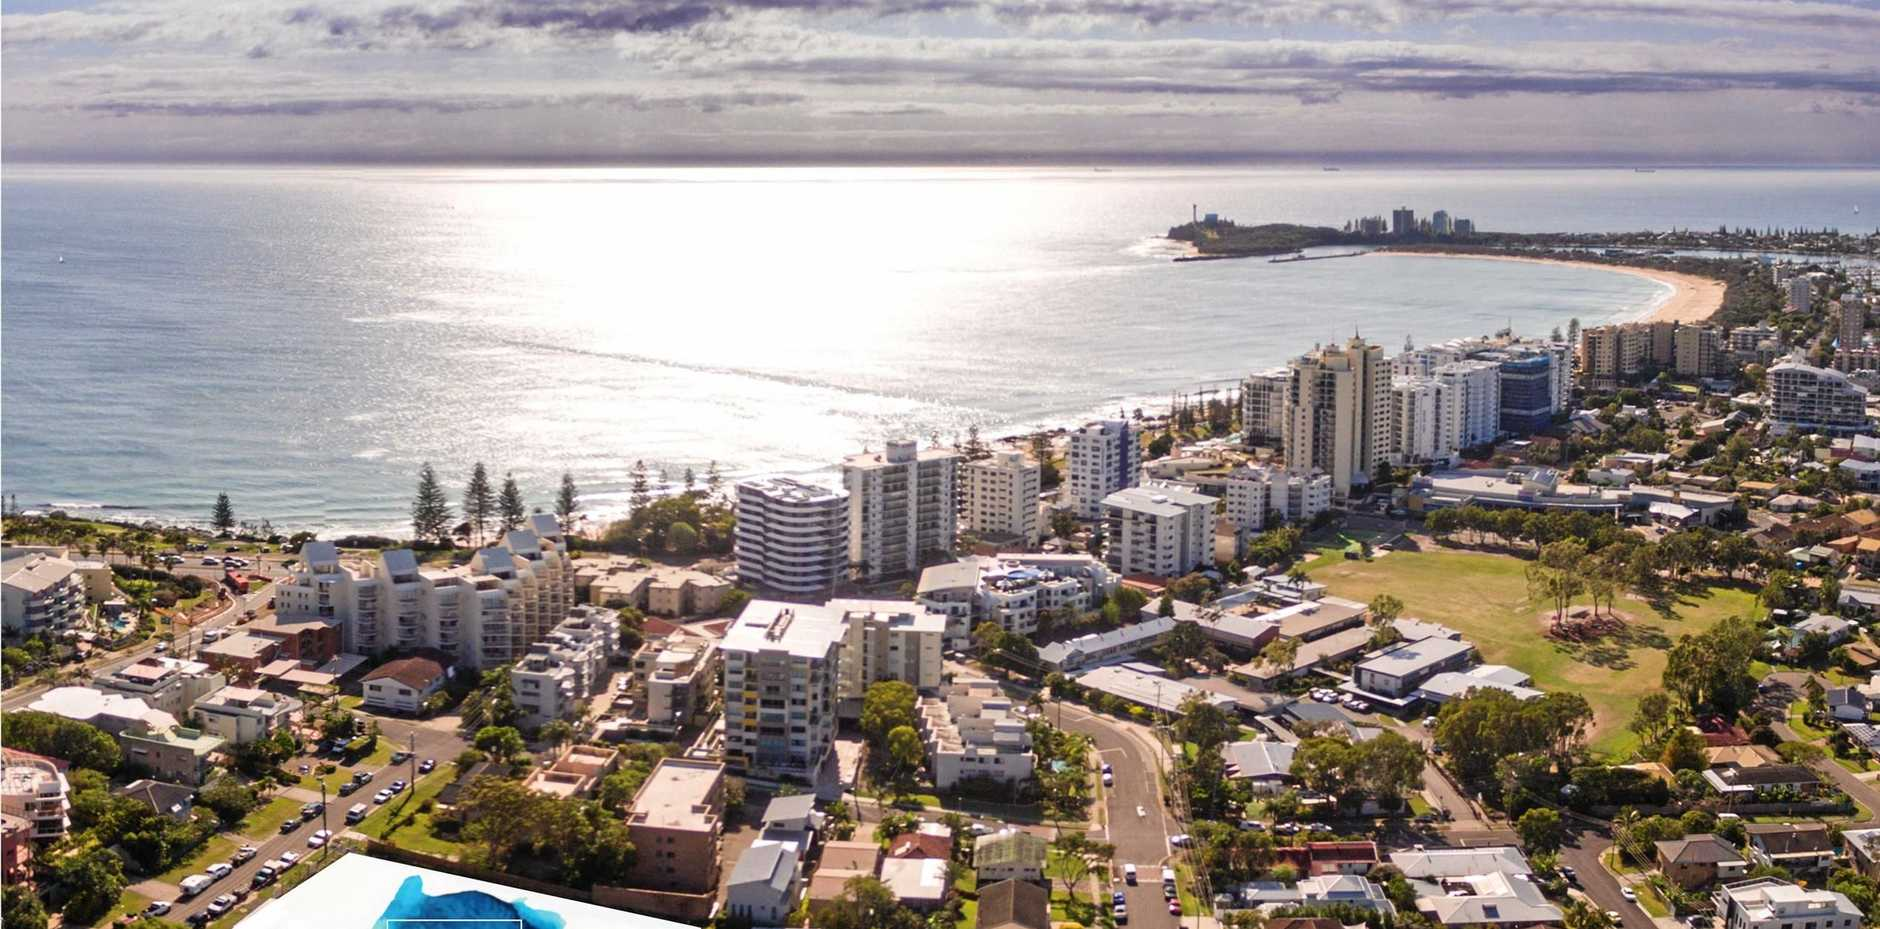 Trinity Beach Homes will comprise a collection of 10 freestanding, multi-level homes within walking distance to Mooloolaba and Alexandra Headland beaches, cafes restaurants and the famous Mooloolaba Esplanade precinct.